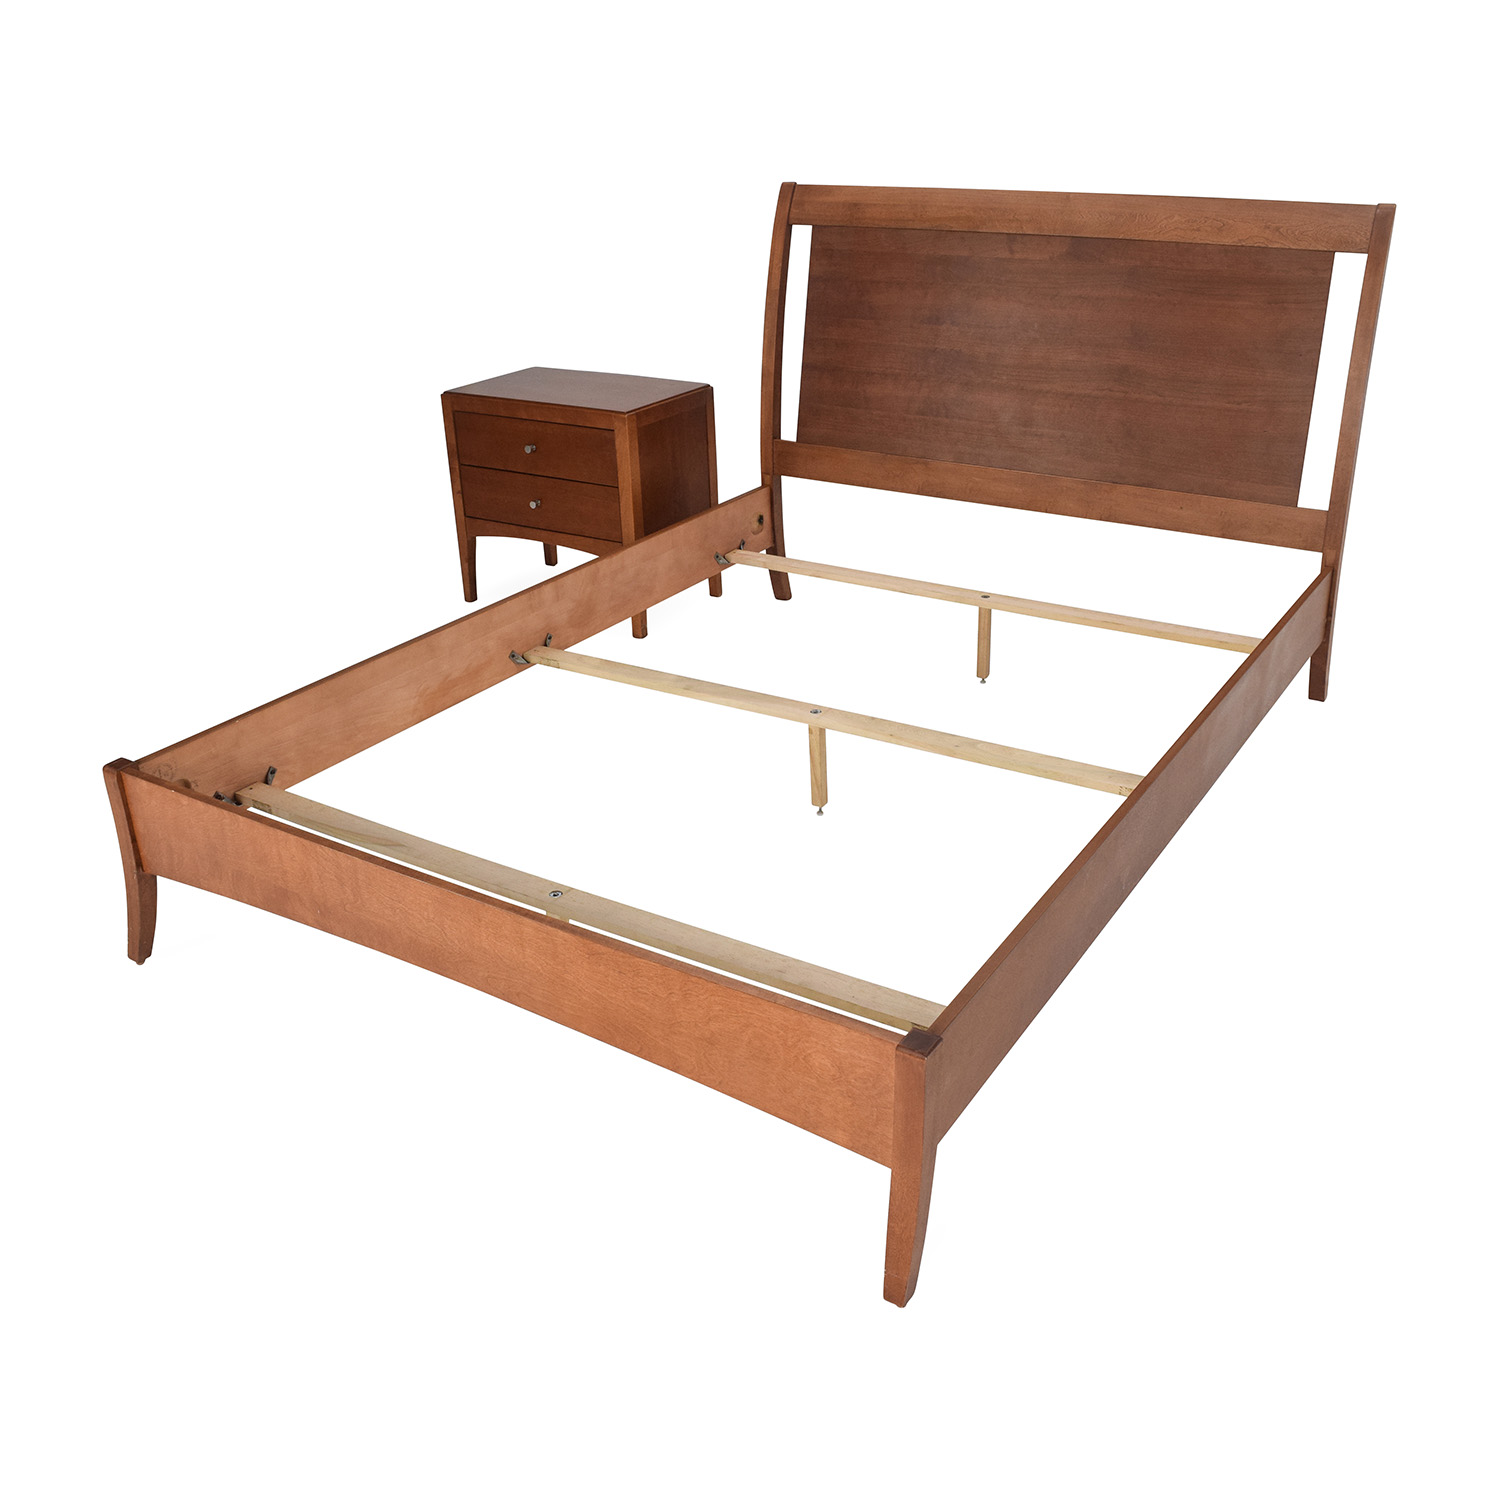 macys bed frames 72 macys macy s bed frame and matching side table 12185